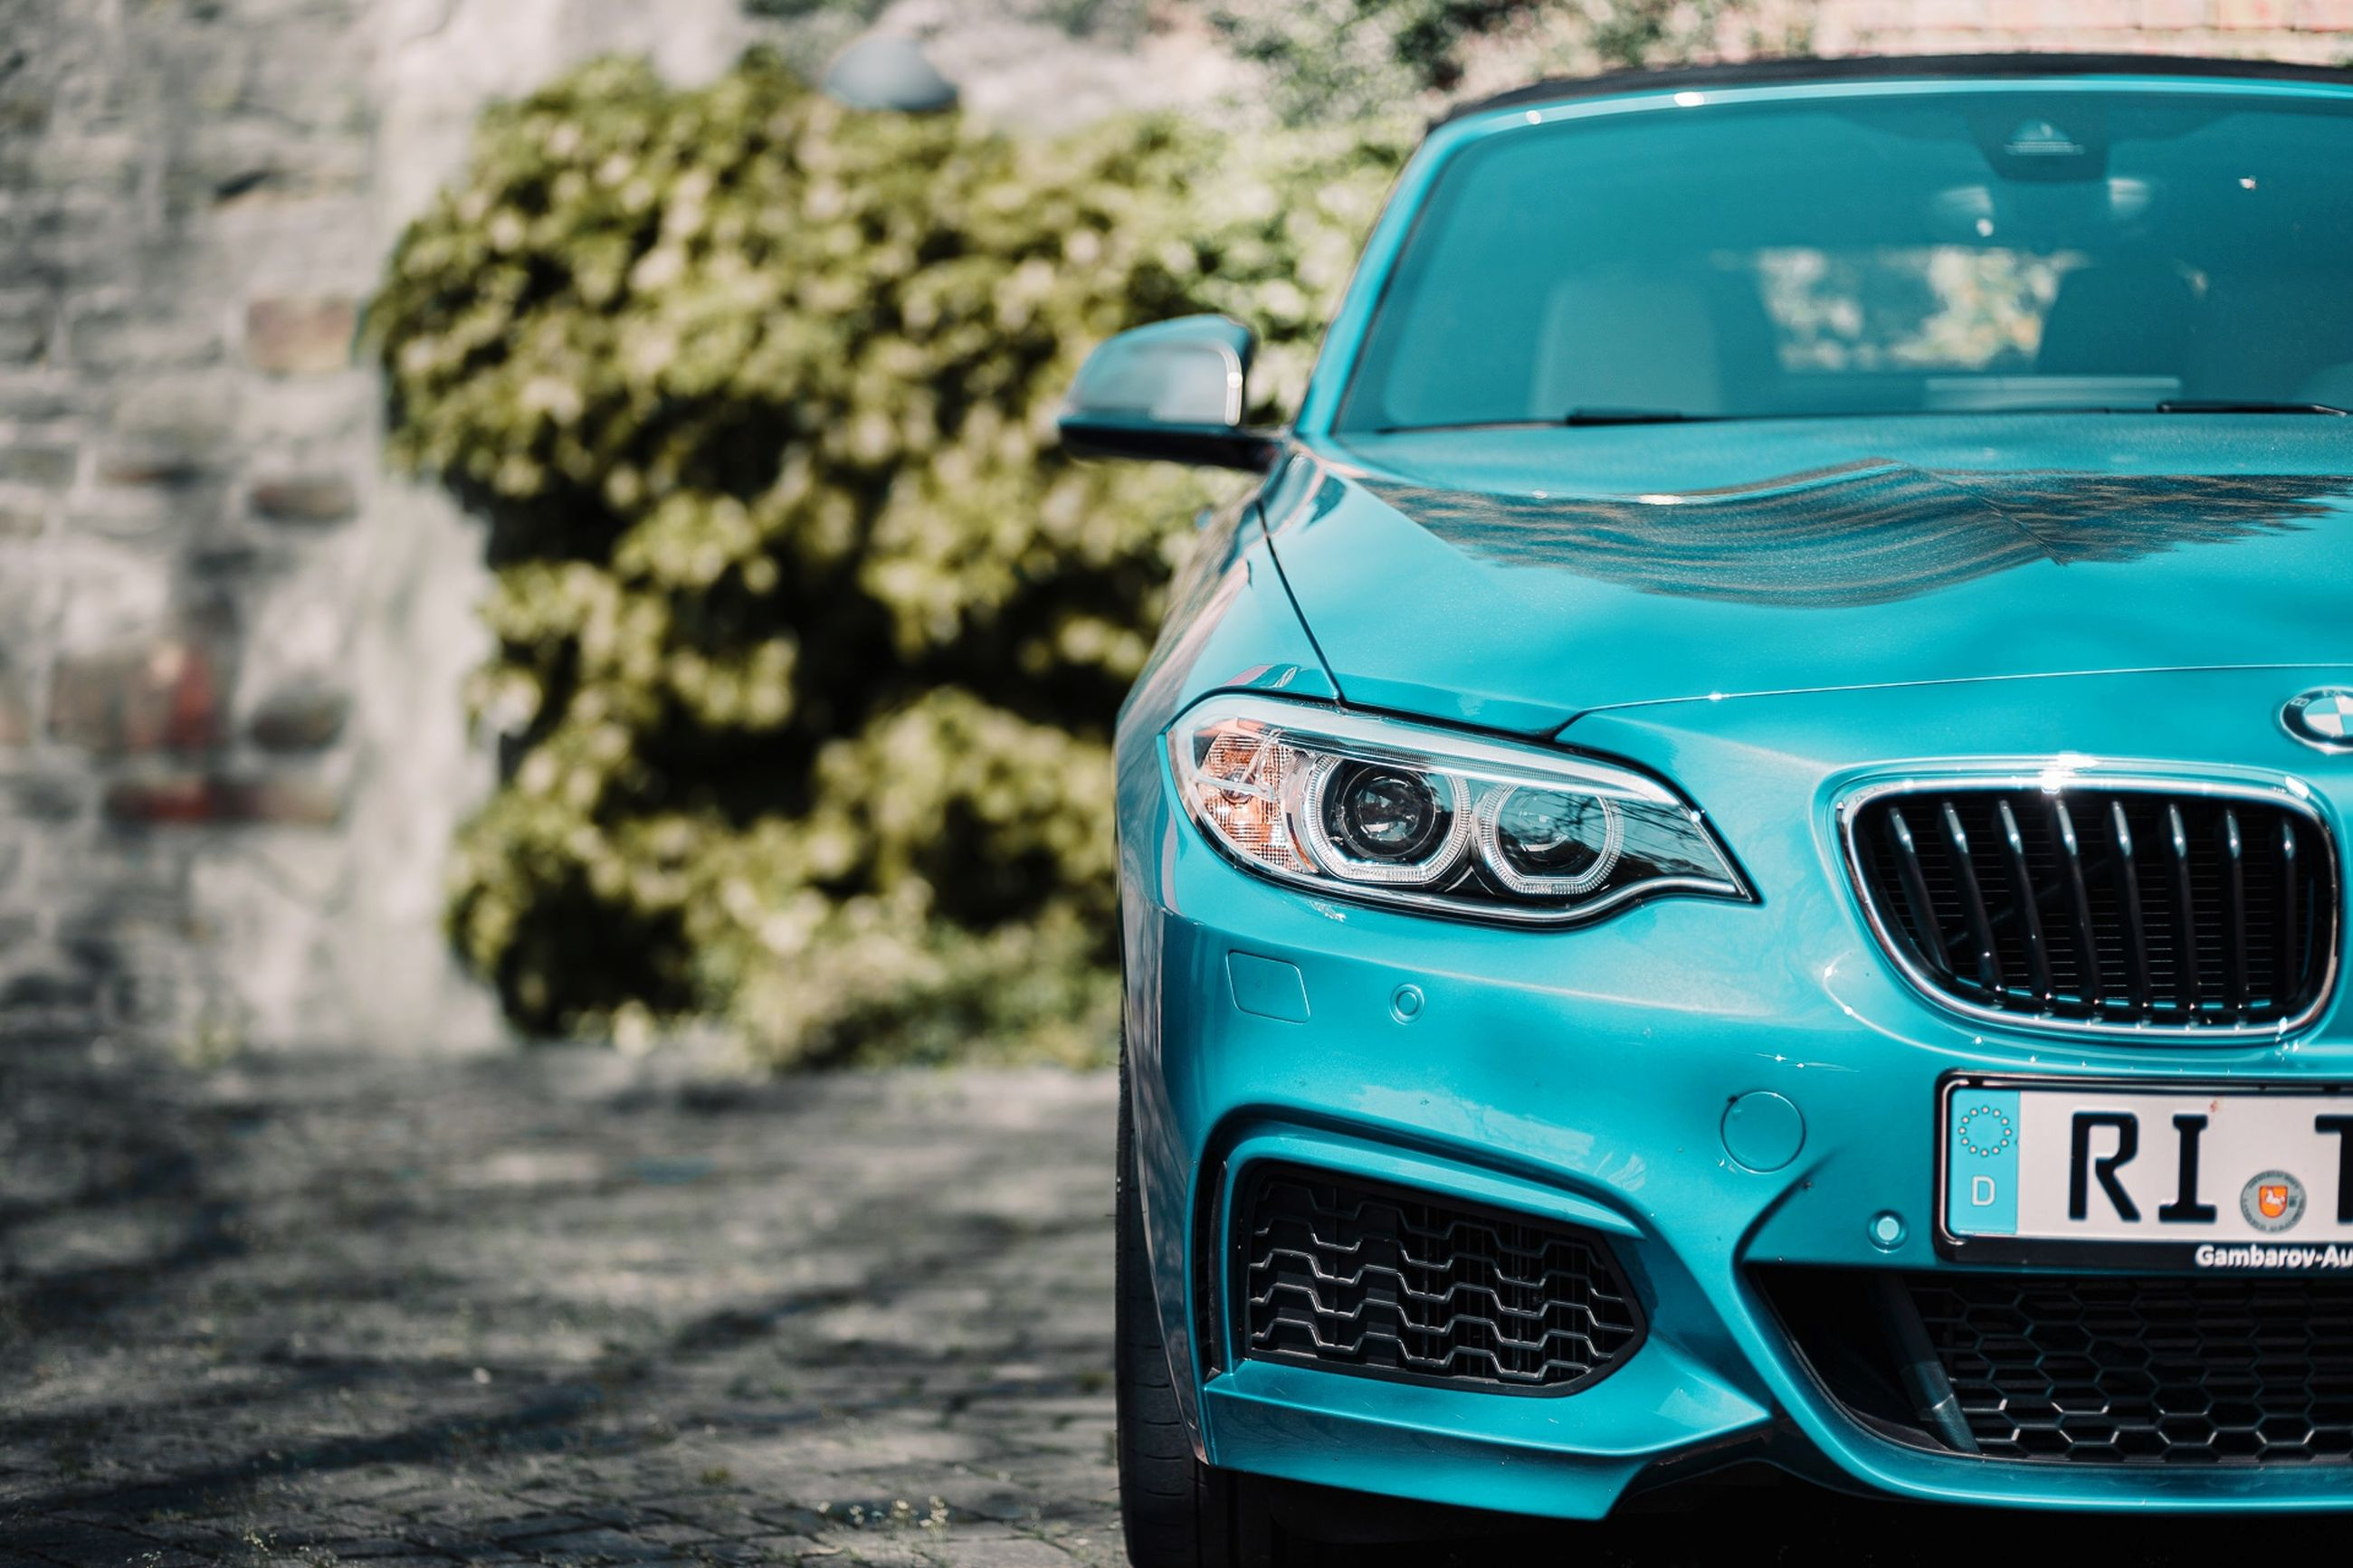 car, mode of transportation, motor vehicle, transportation, land vehicle, day, focus on foreground, retro styled, plant, city, no people, tree, headlight, outdoors, close-up, sunlight, nature, blue, street, turquoise colored